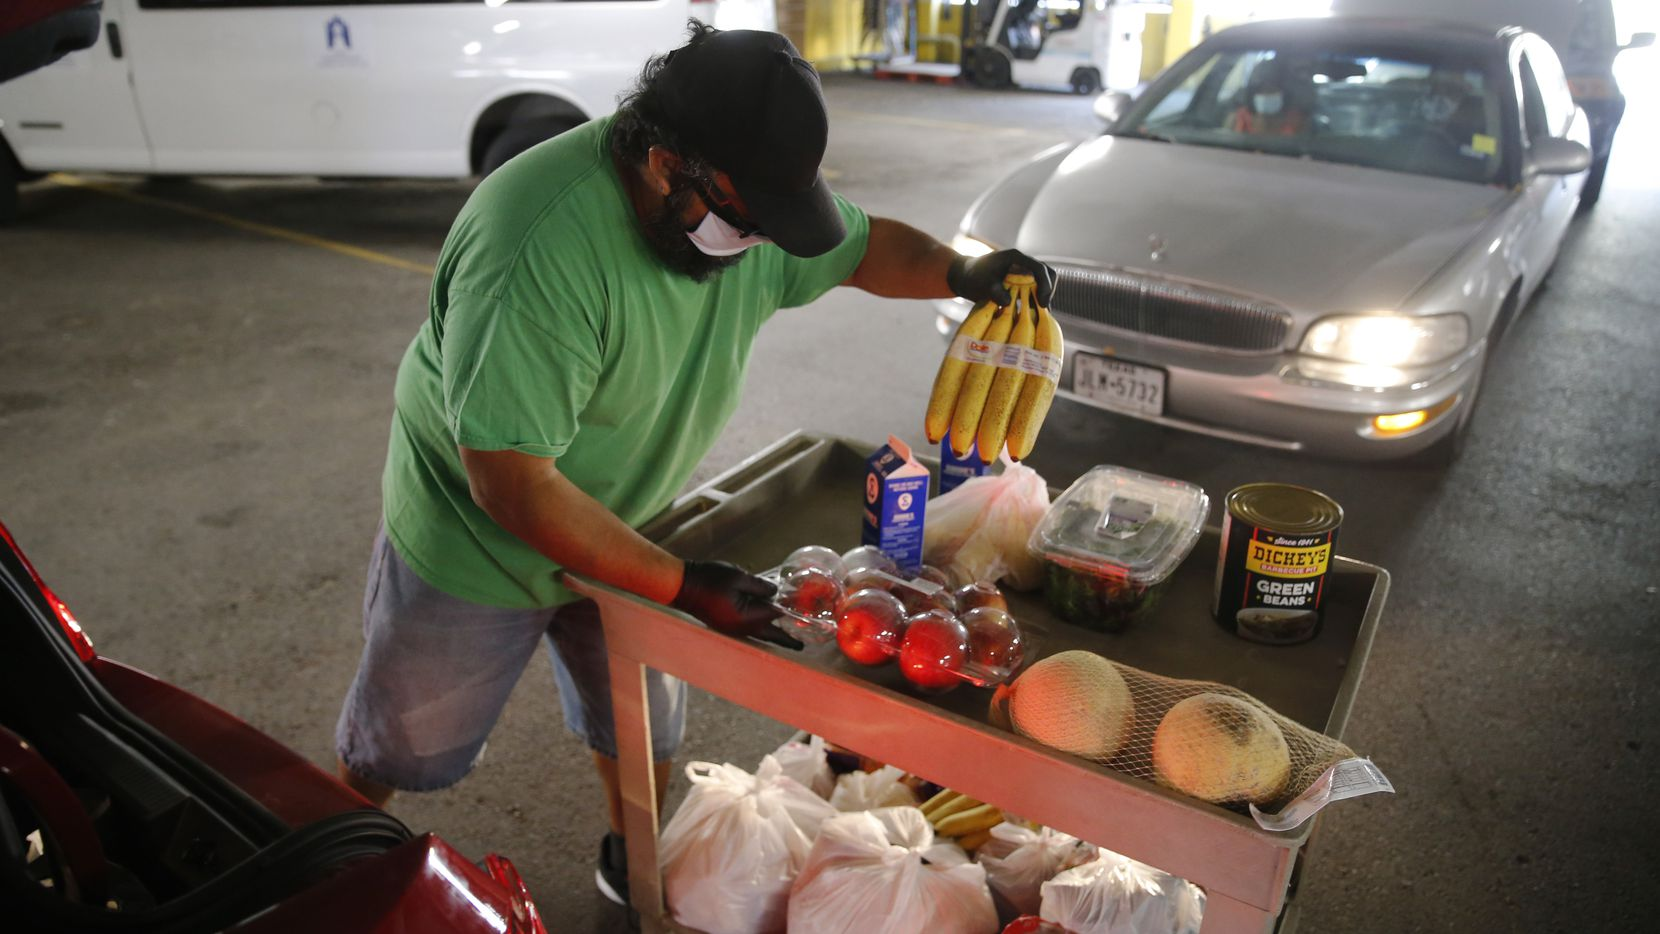 Oscar Espinosa works on putting food in a vehicle during a drive-through food distribution at The Stewpot on Friday, November 13, 2020 in Dallas. Each vehicle gets 95-110 pounds of food.